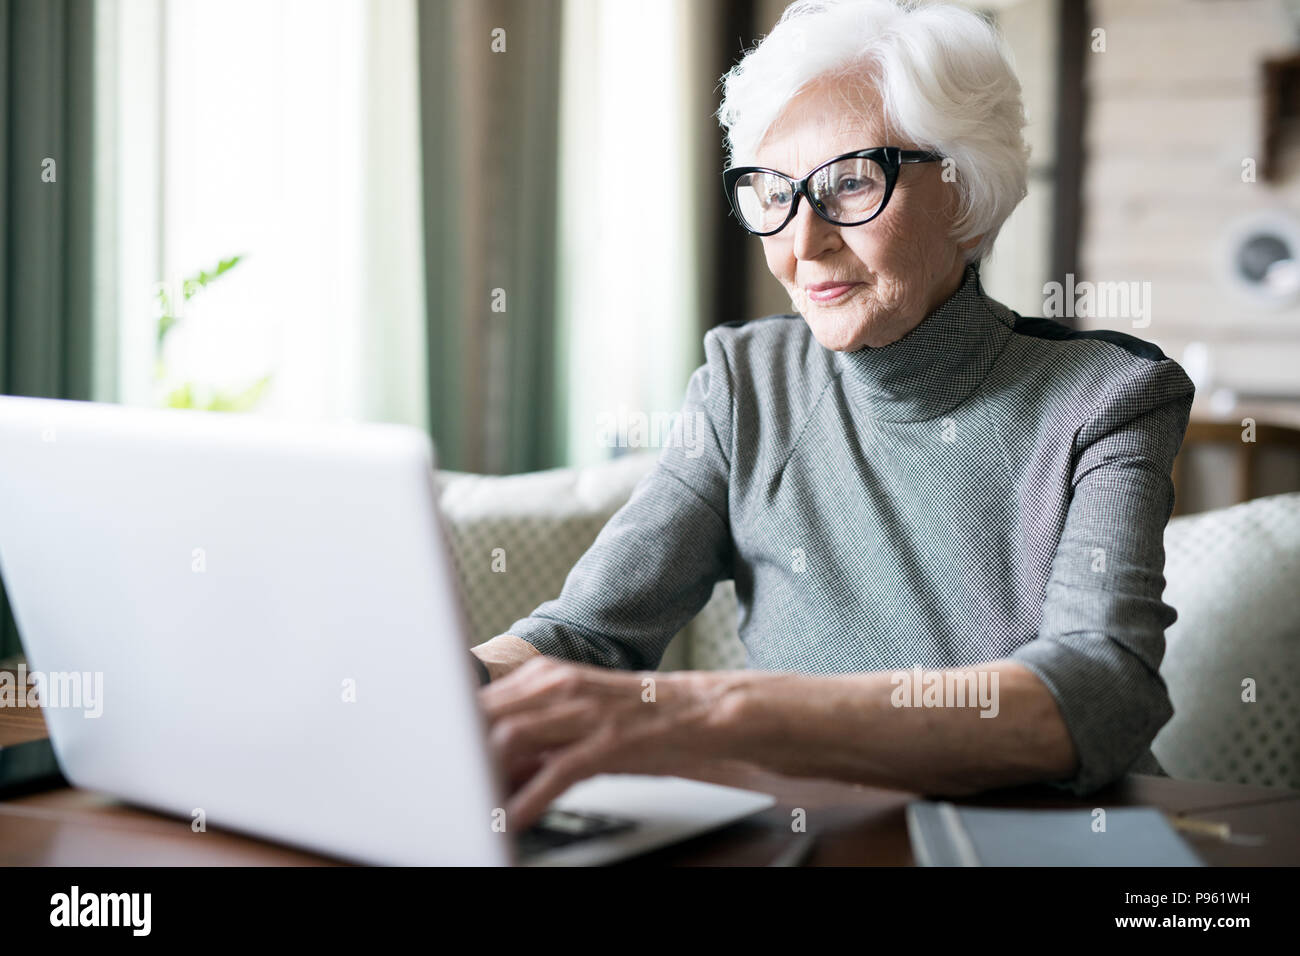 Senior woman typing on laptop - Stock Image